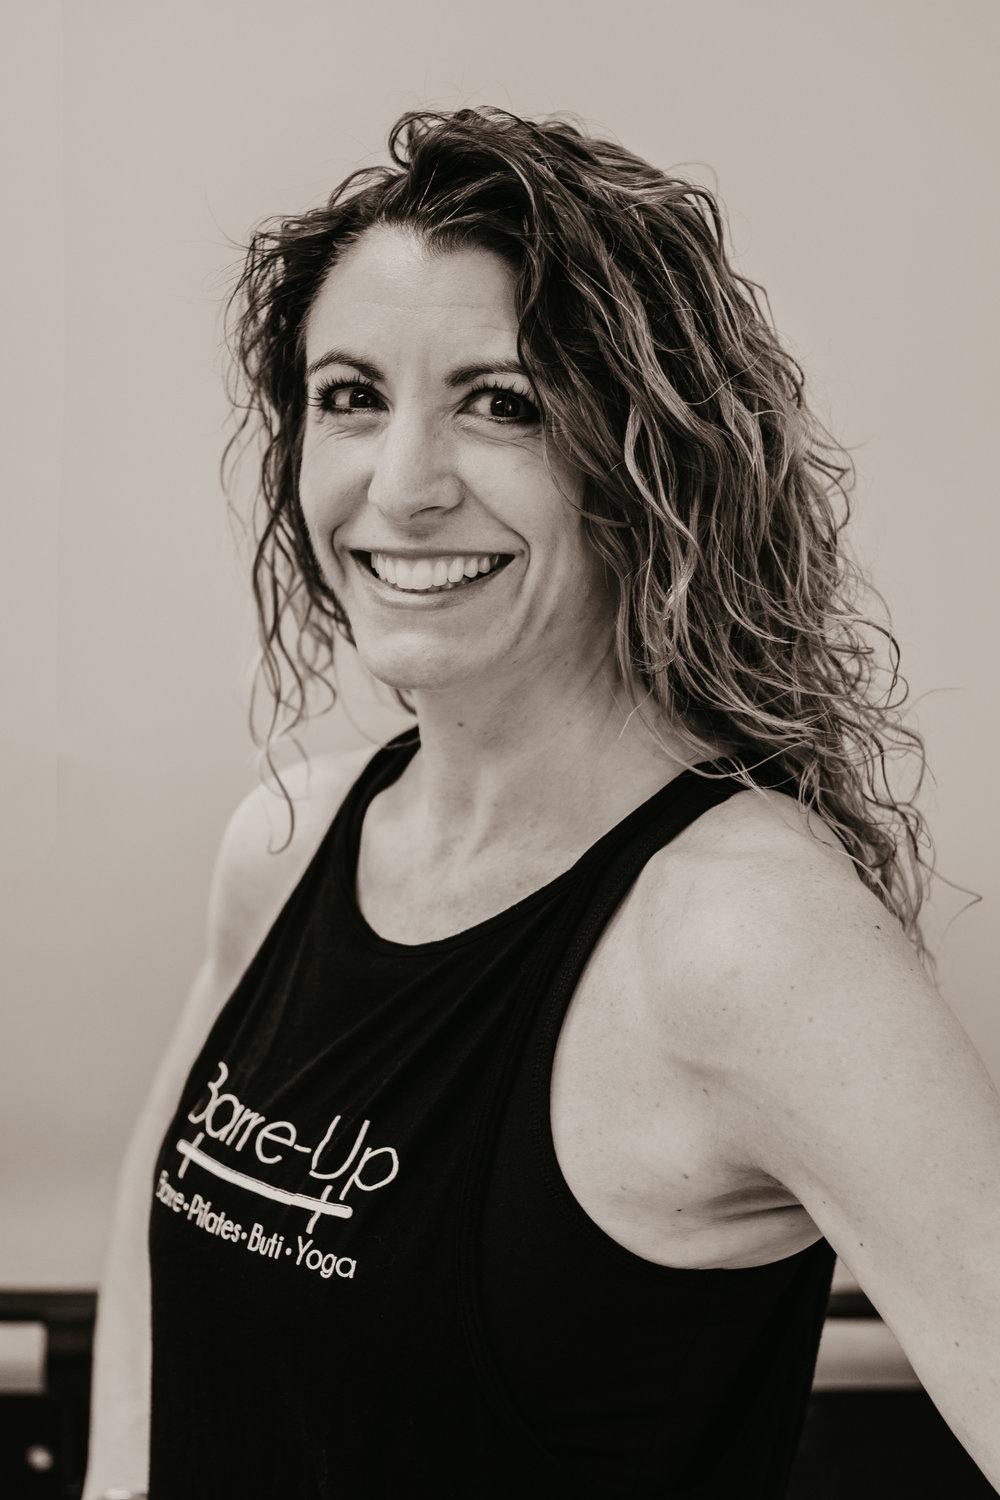 Jen M. - Jen is a FT mom, wife, and learner as well as joy & peace seeker. She is also a PT speech therapist, yoga instructor, runner, knitter and concertgoer. She found the Barre-up studio when looking for something more after 20+ years of running and practicing yoga (mainly Vinyasa styled). She found that Buti Yoga combined the cardio, strength and flexibility aspects nicely in one packaged hour and while she continues to enjoy recreational running and other types of yoga she was also searching for a balance. Having always been a good student, becoming an instructor allowed her to learn more, practice better and prepare to share the joy of Buti, Vinyasa, and Yin yoga with others. She is trained in RYT-200 with certifications in Buti Yoga, Kids Yoga and most recently Yin Yoga where she studied with Bernie Clark in Vancouver, British Columbia, Canada.She hasn't regretted one iota of the journey and thoroughly enjoys teaching classes just as much as she continues to enjoy taking classes.Her favorite food is buttered toast, she's picky about her beer, she believes one could never have enough shoes and her favorite 2nd family is her Barre-up family